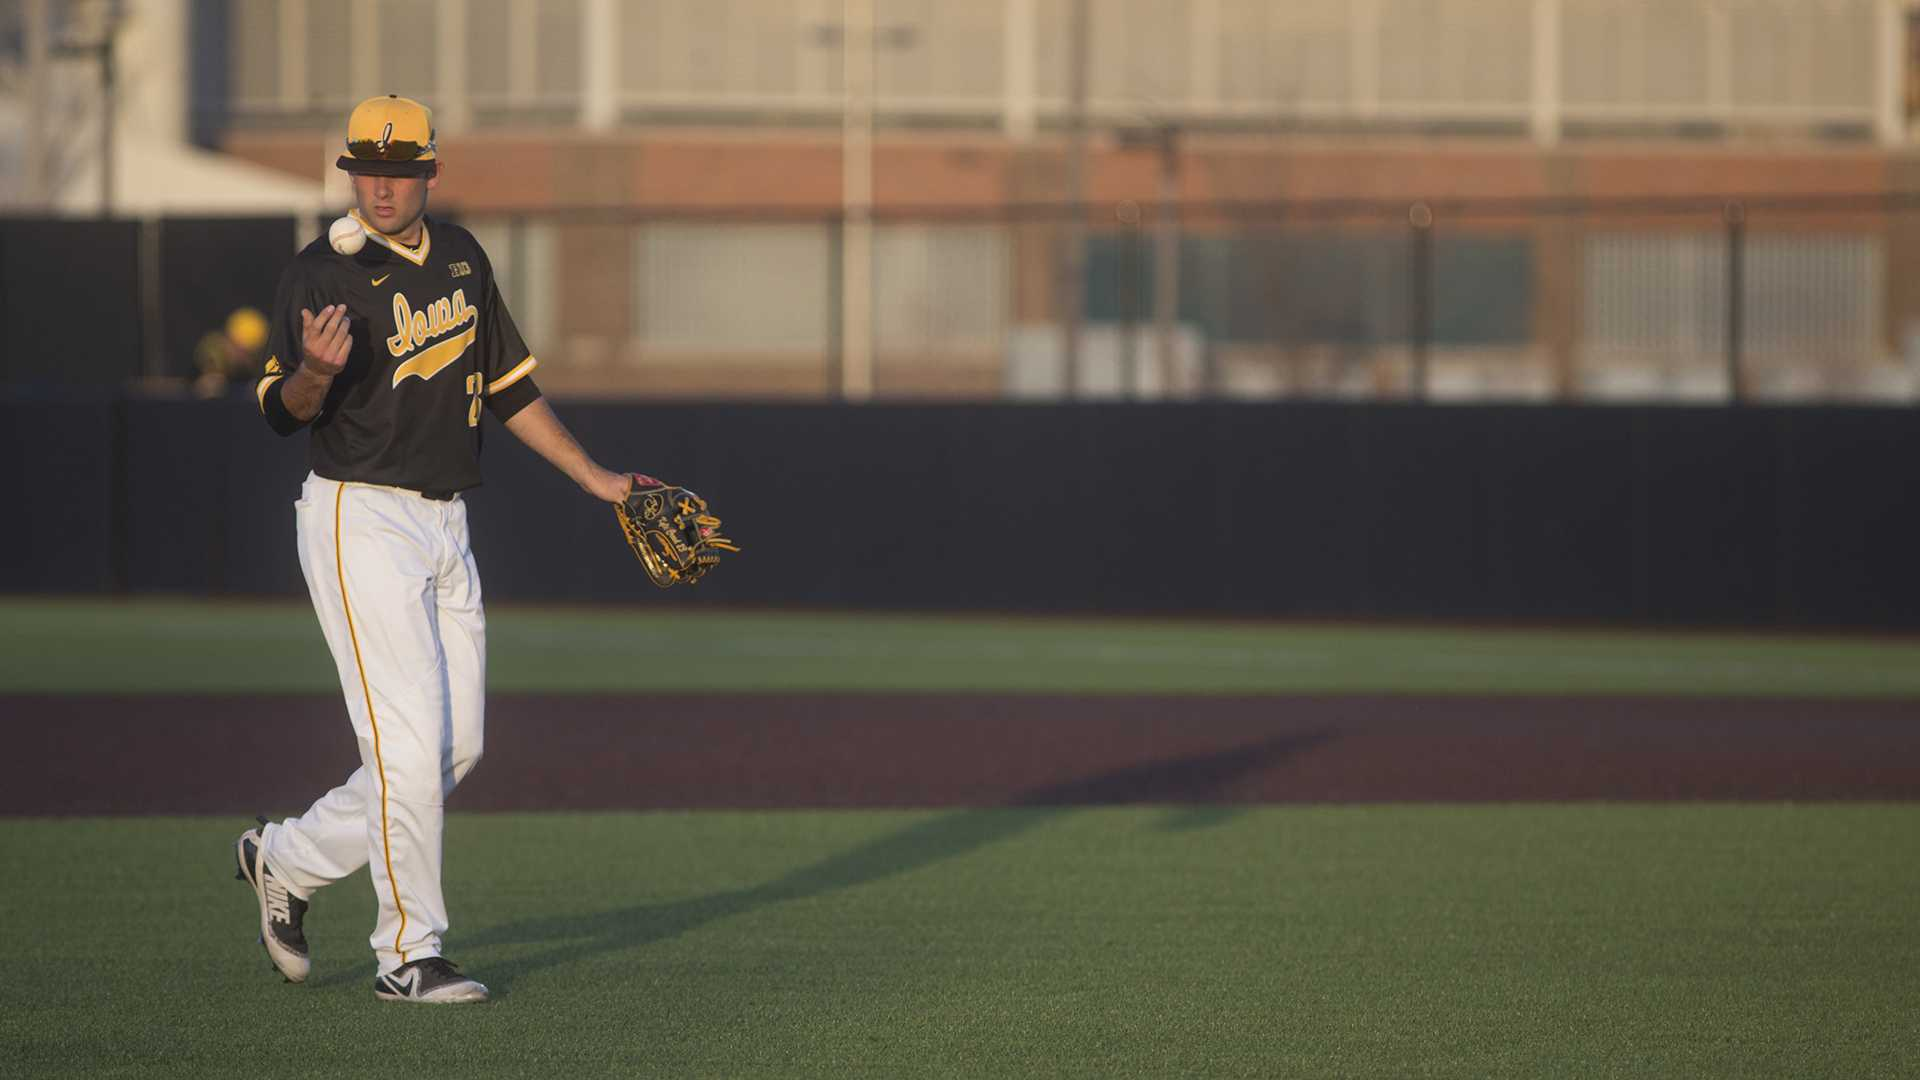 Iowa pitcher Jack Dreyer walks back to the mound during a game at Duane Banks Fields on Wednesday Apr. 25, 2018. (Katie Goodale/The Daily Iowan)